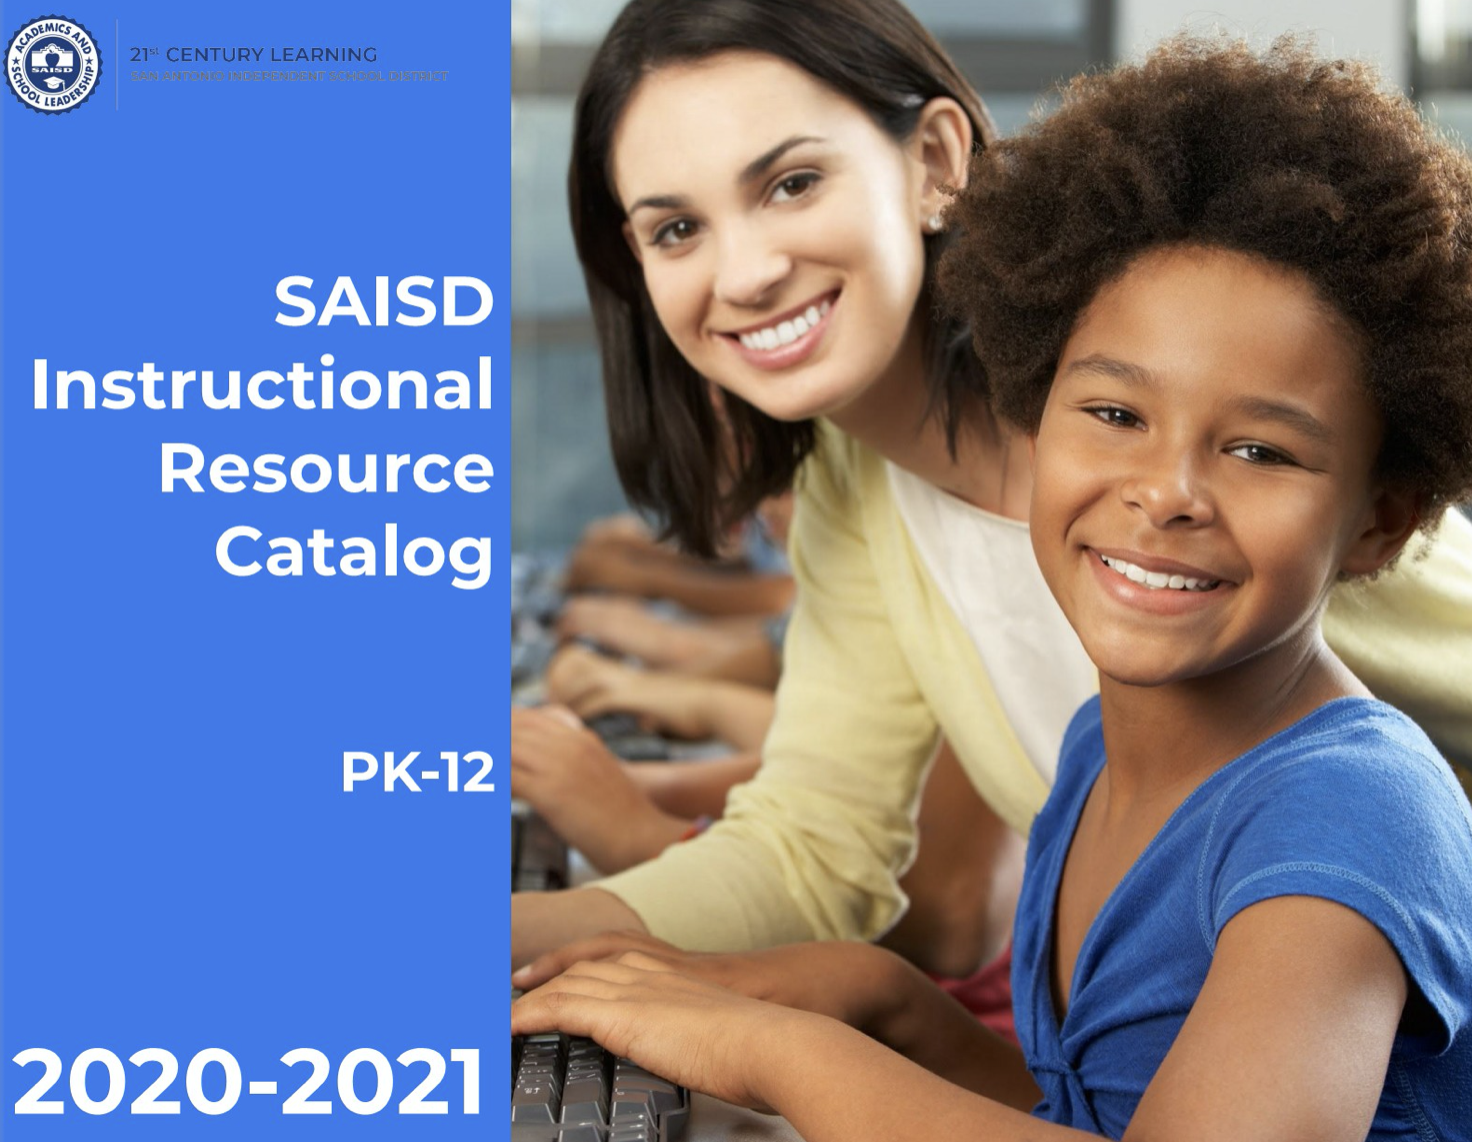 SAISD Instructional Resource Catalog